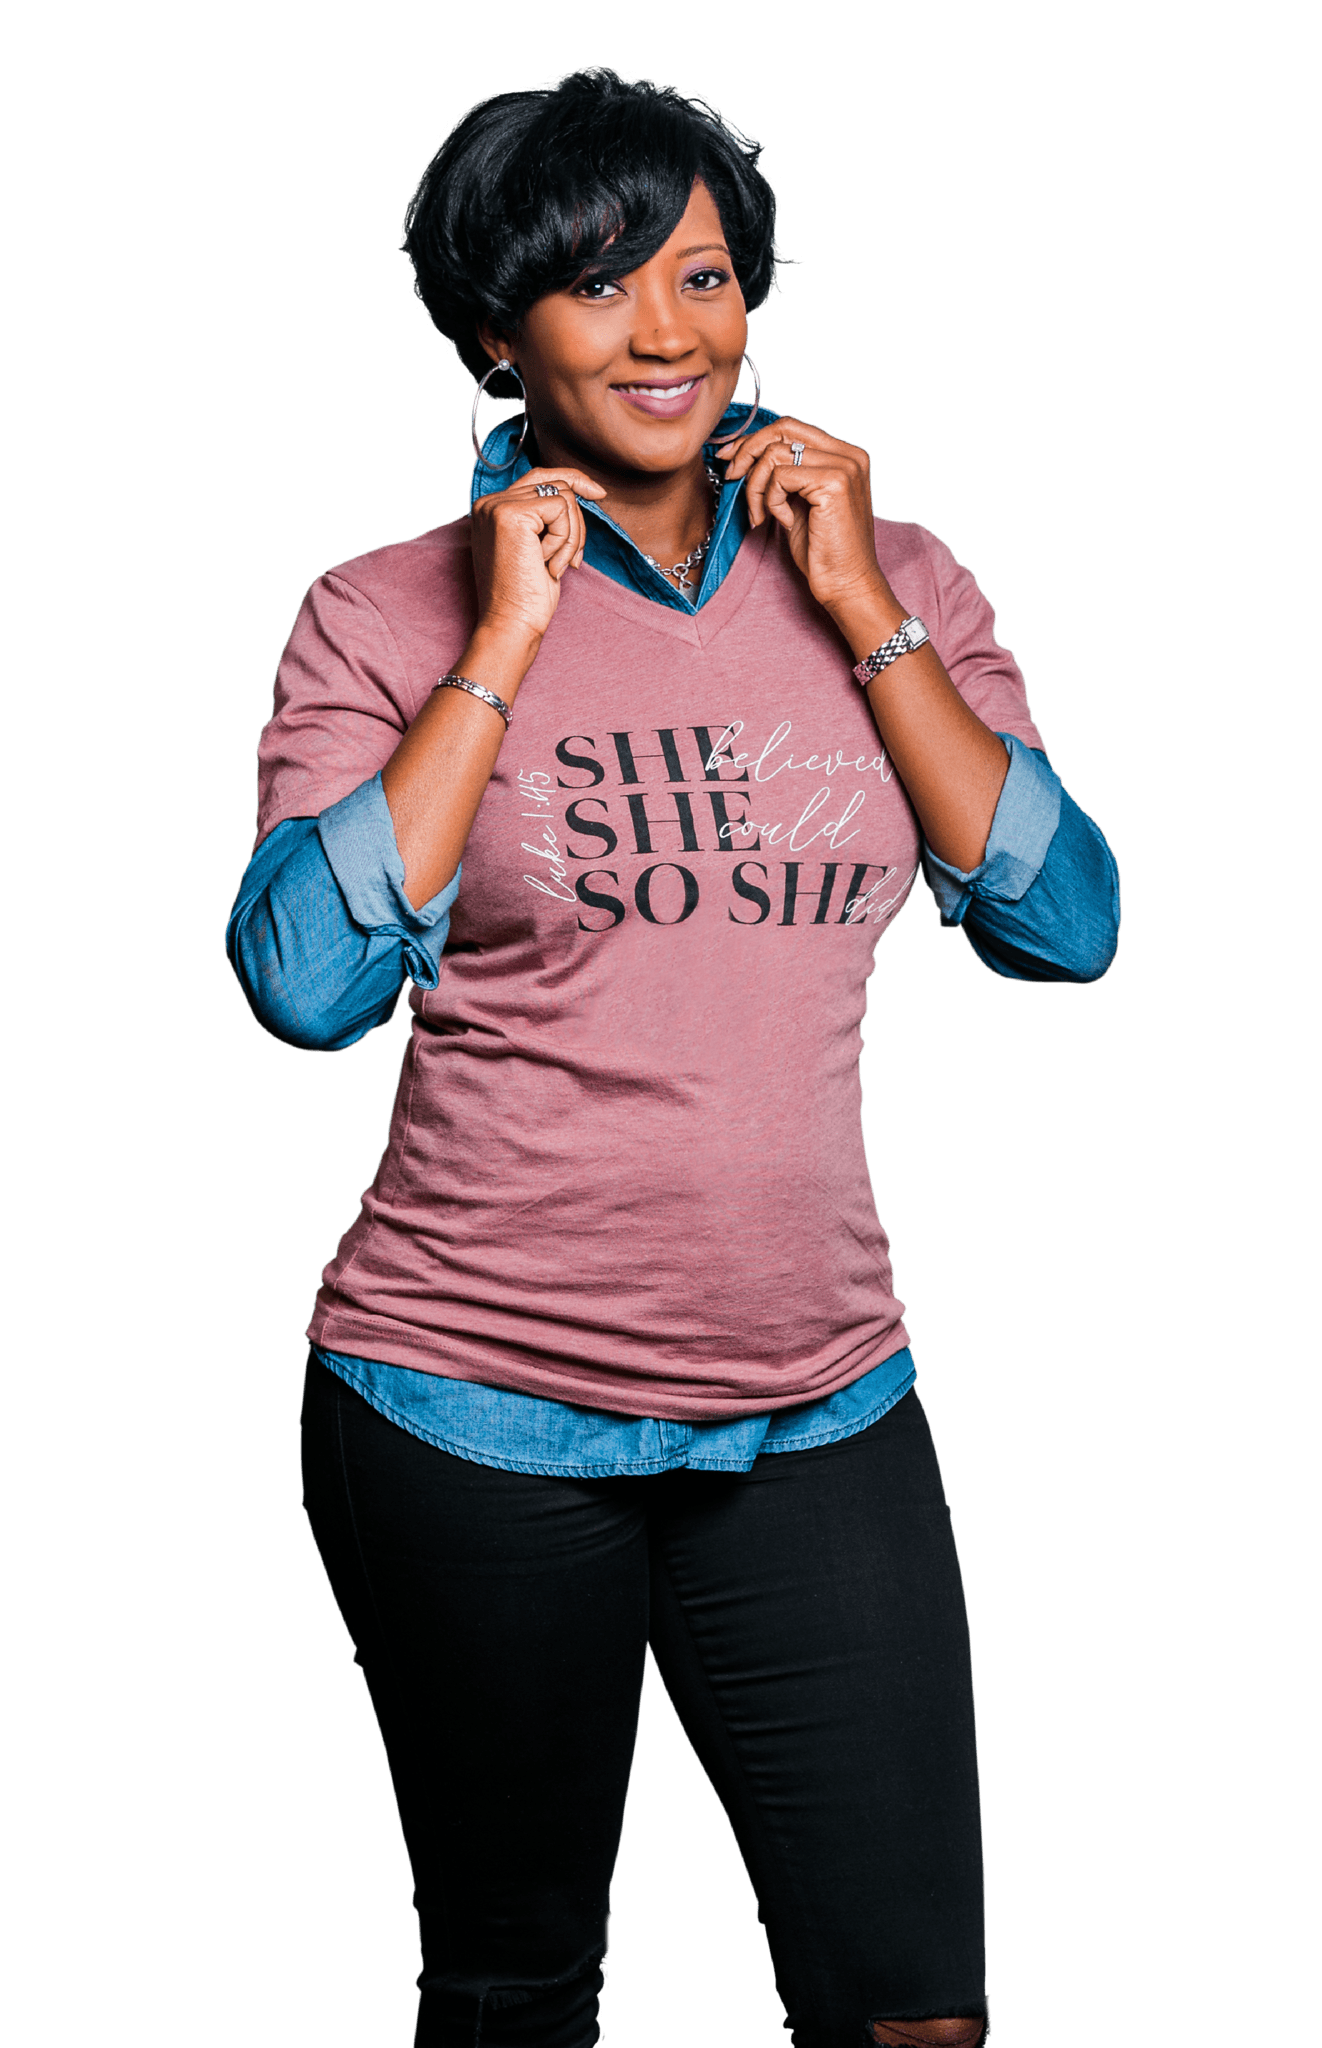 She Believed Premium V-Neck Shirt - Vision Apparel Inc.